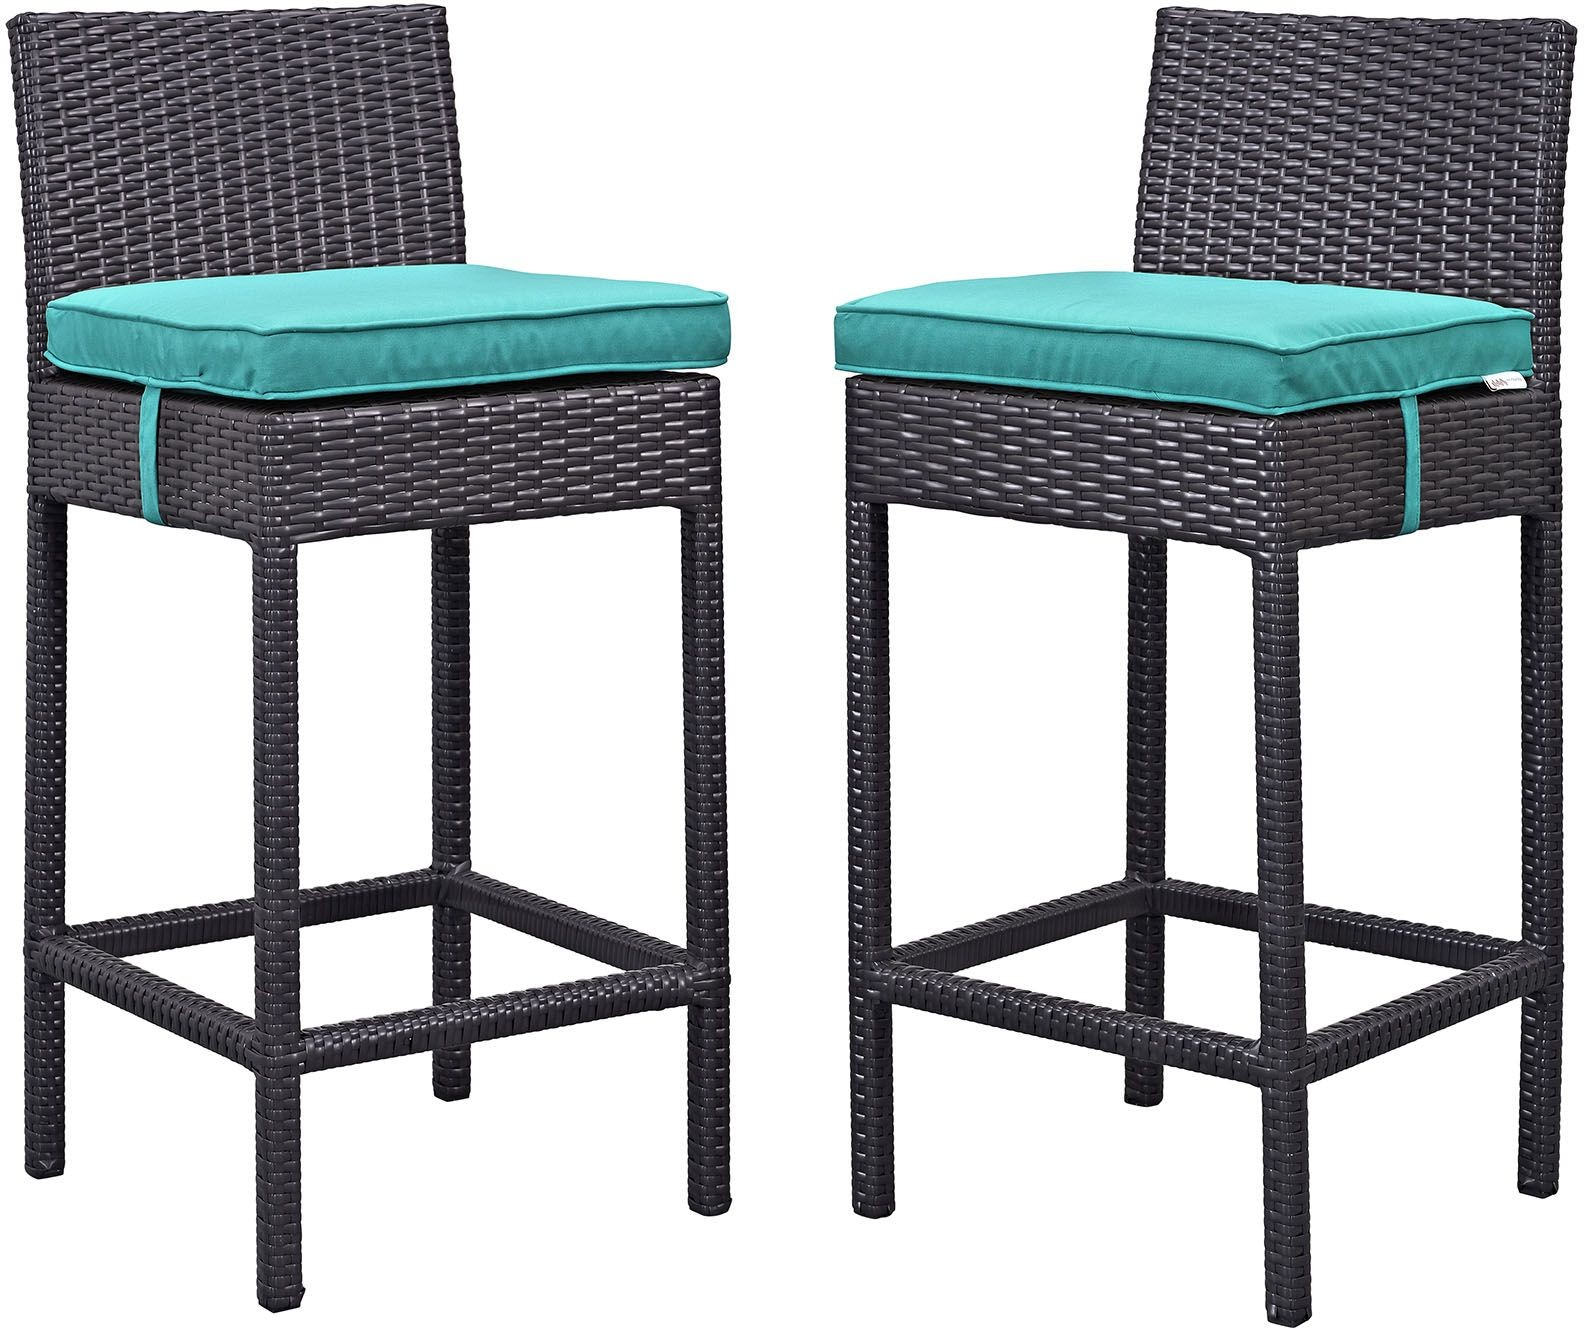 Lift Espresso Turquoise Outdoor Patio Bar Stool Set of 2  : eei 1281 exp trq from colemanfurniture.com size 1584 x 1328 jpeg 378kB